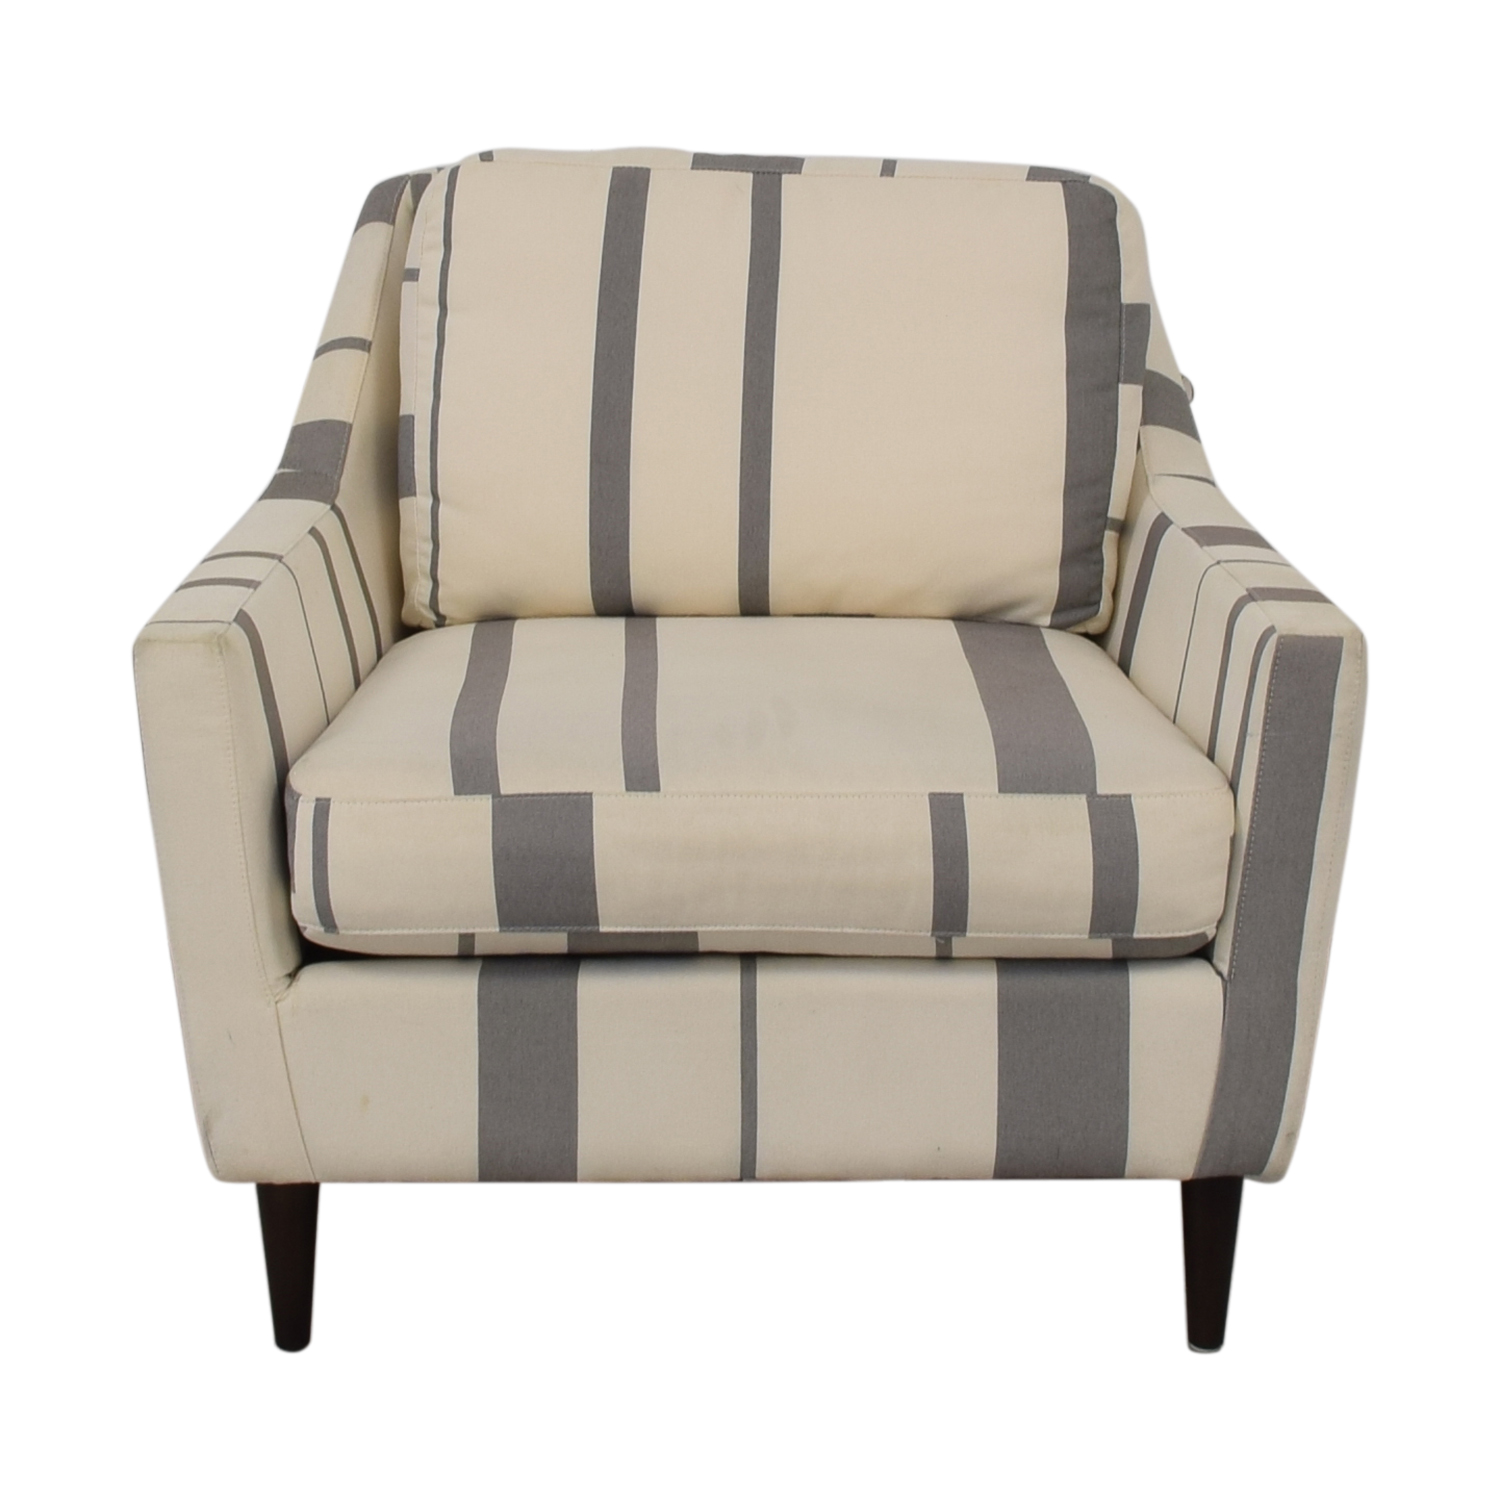 West Elm Everett Grey and White Striped Accent Chair sale